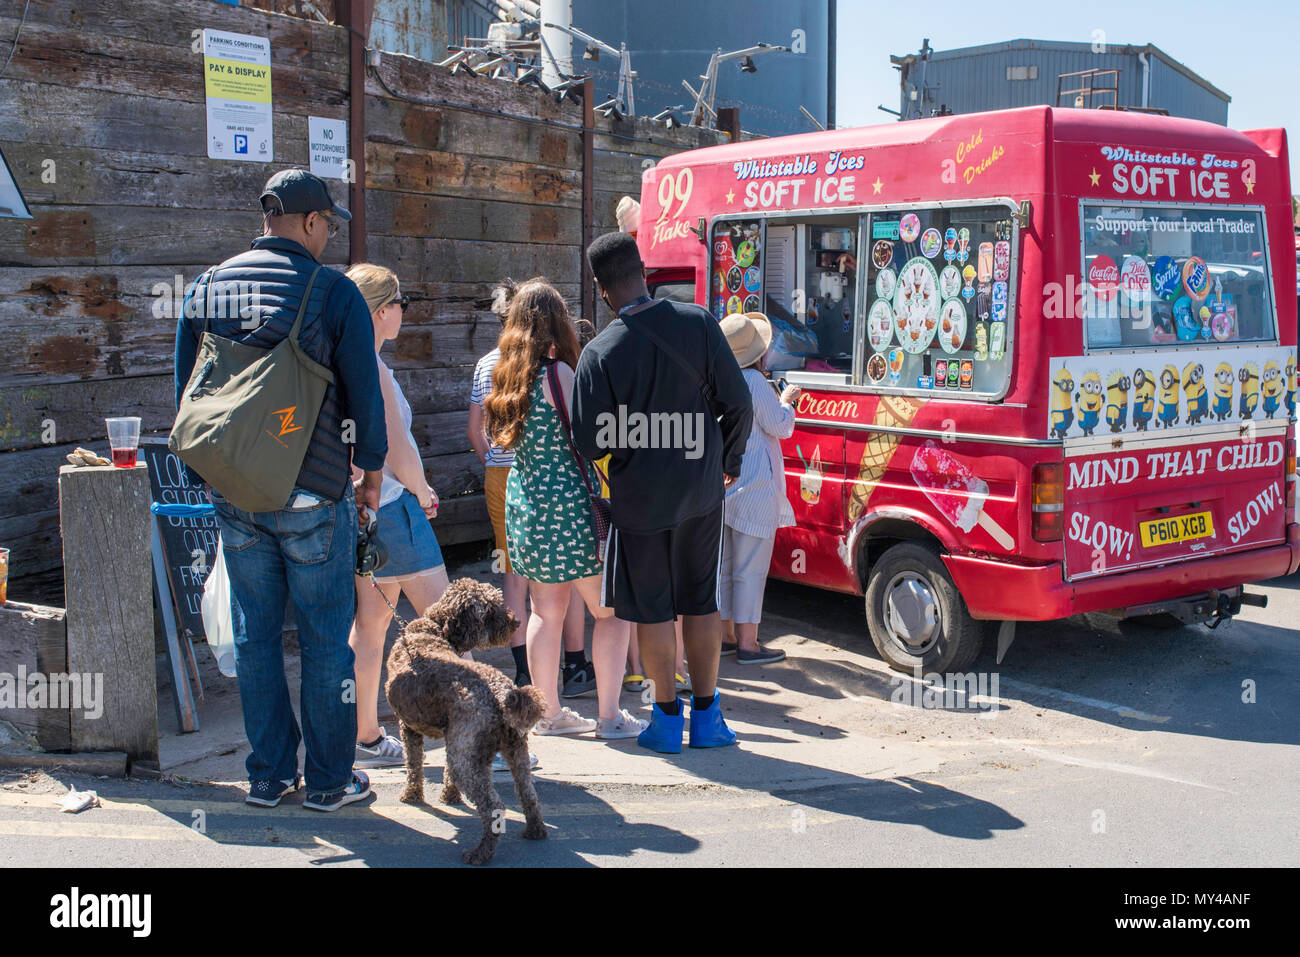 People queueing for ice creams beside the industrial unit on Whitstable seafront, Kent, England, UK. - Stock Image